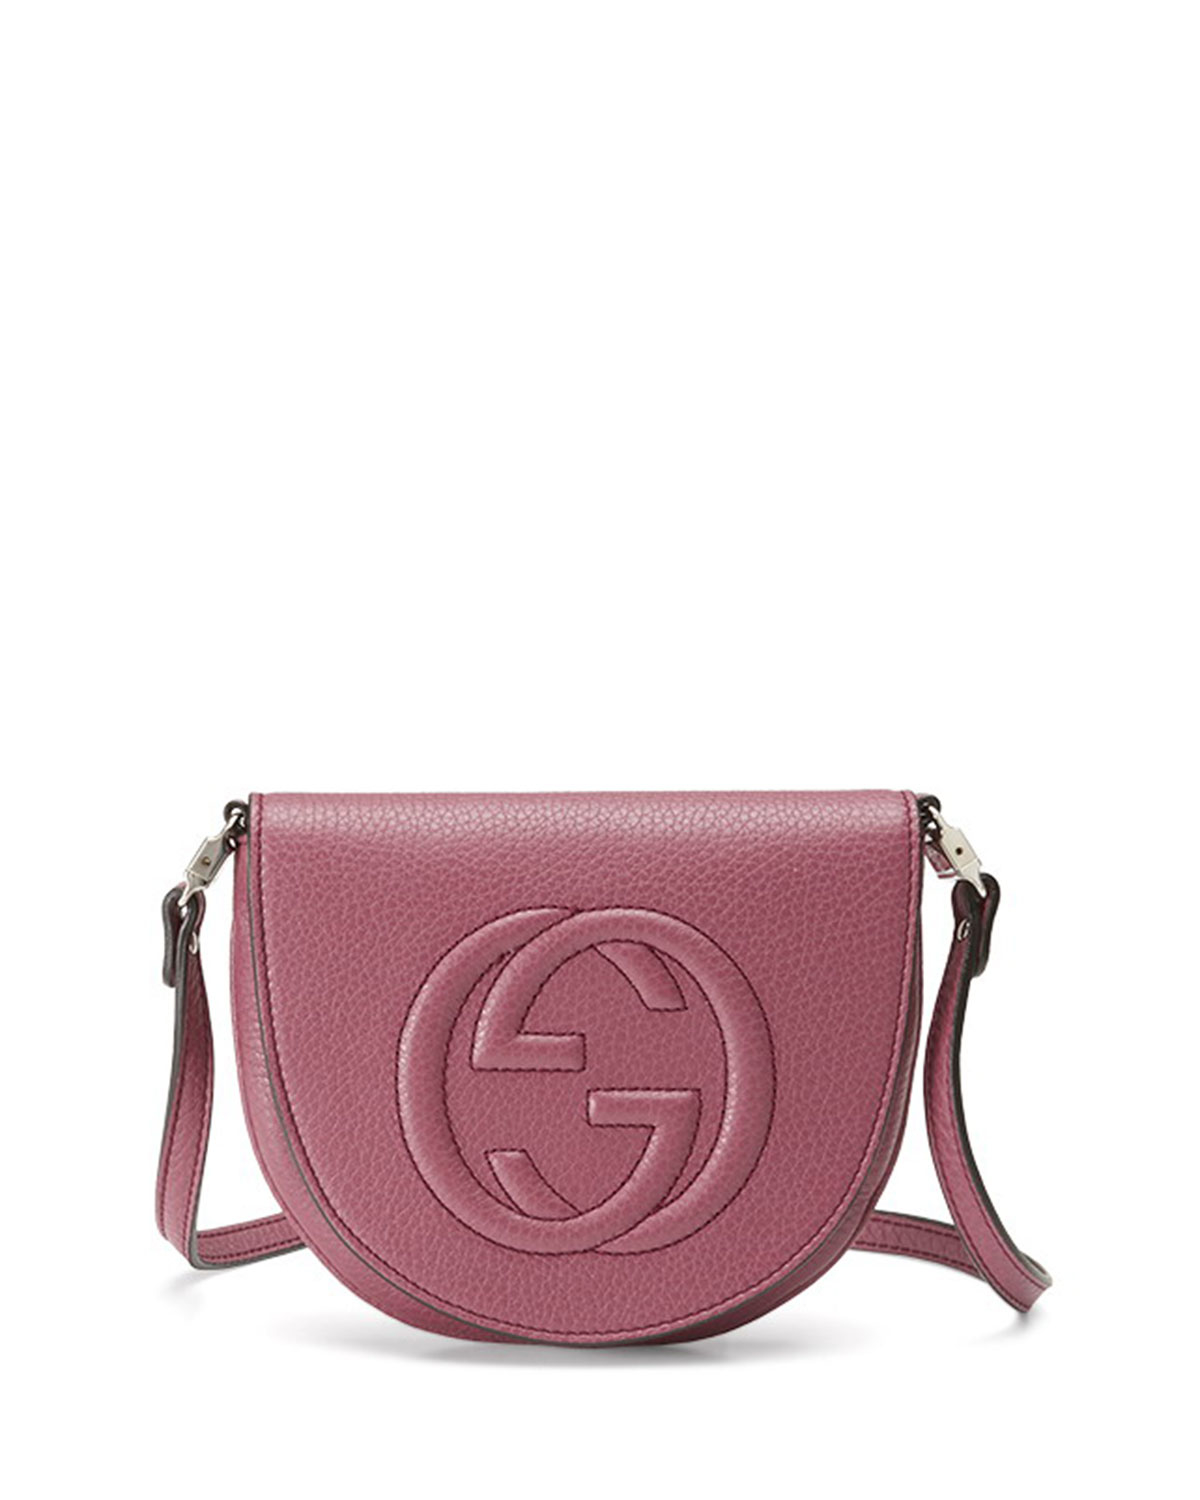 8ff21245f11eaa Gucci Logo-Stitched Leather Messenger Bag in Pink - Lyst